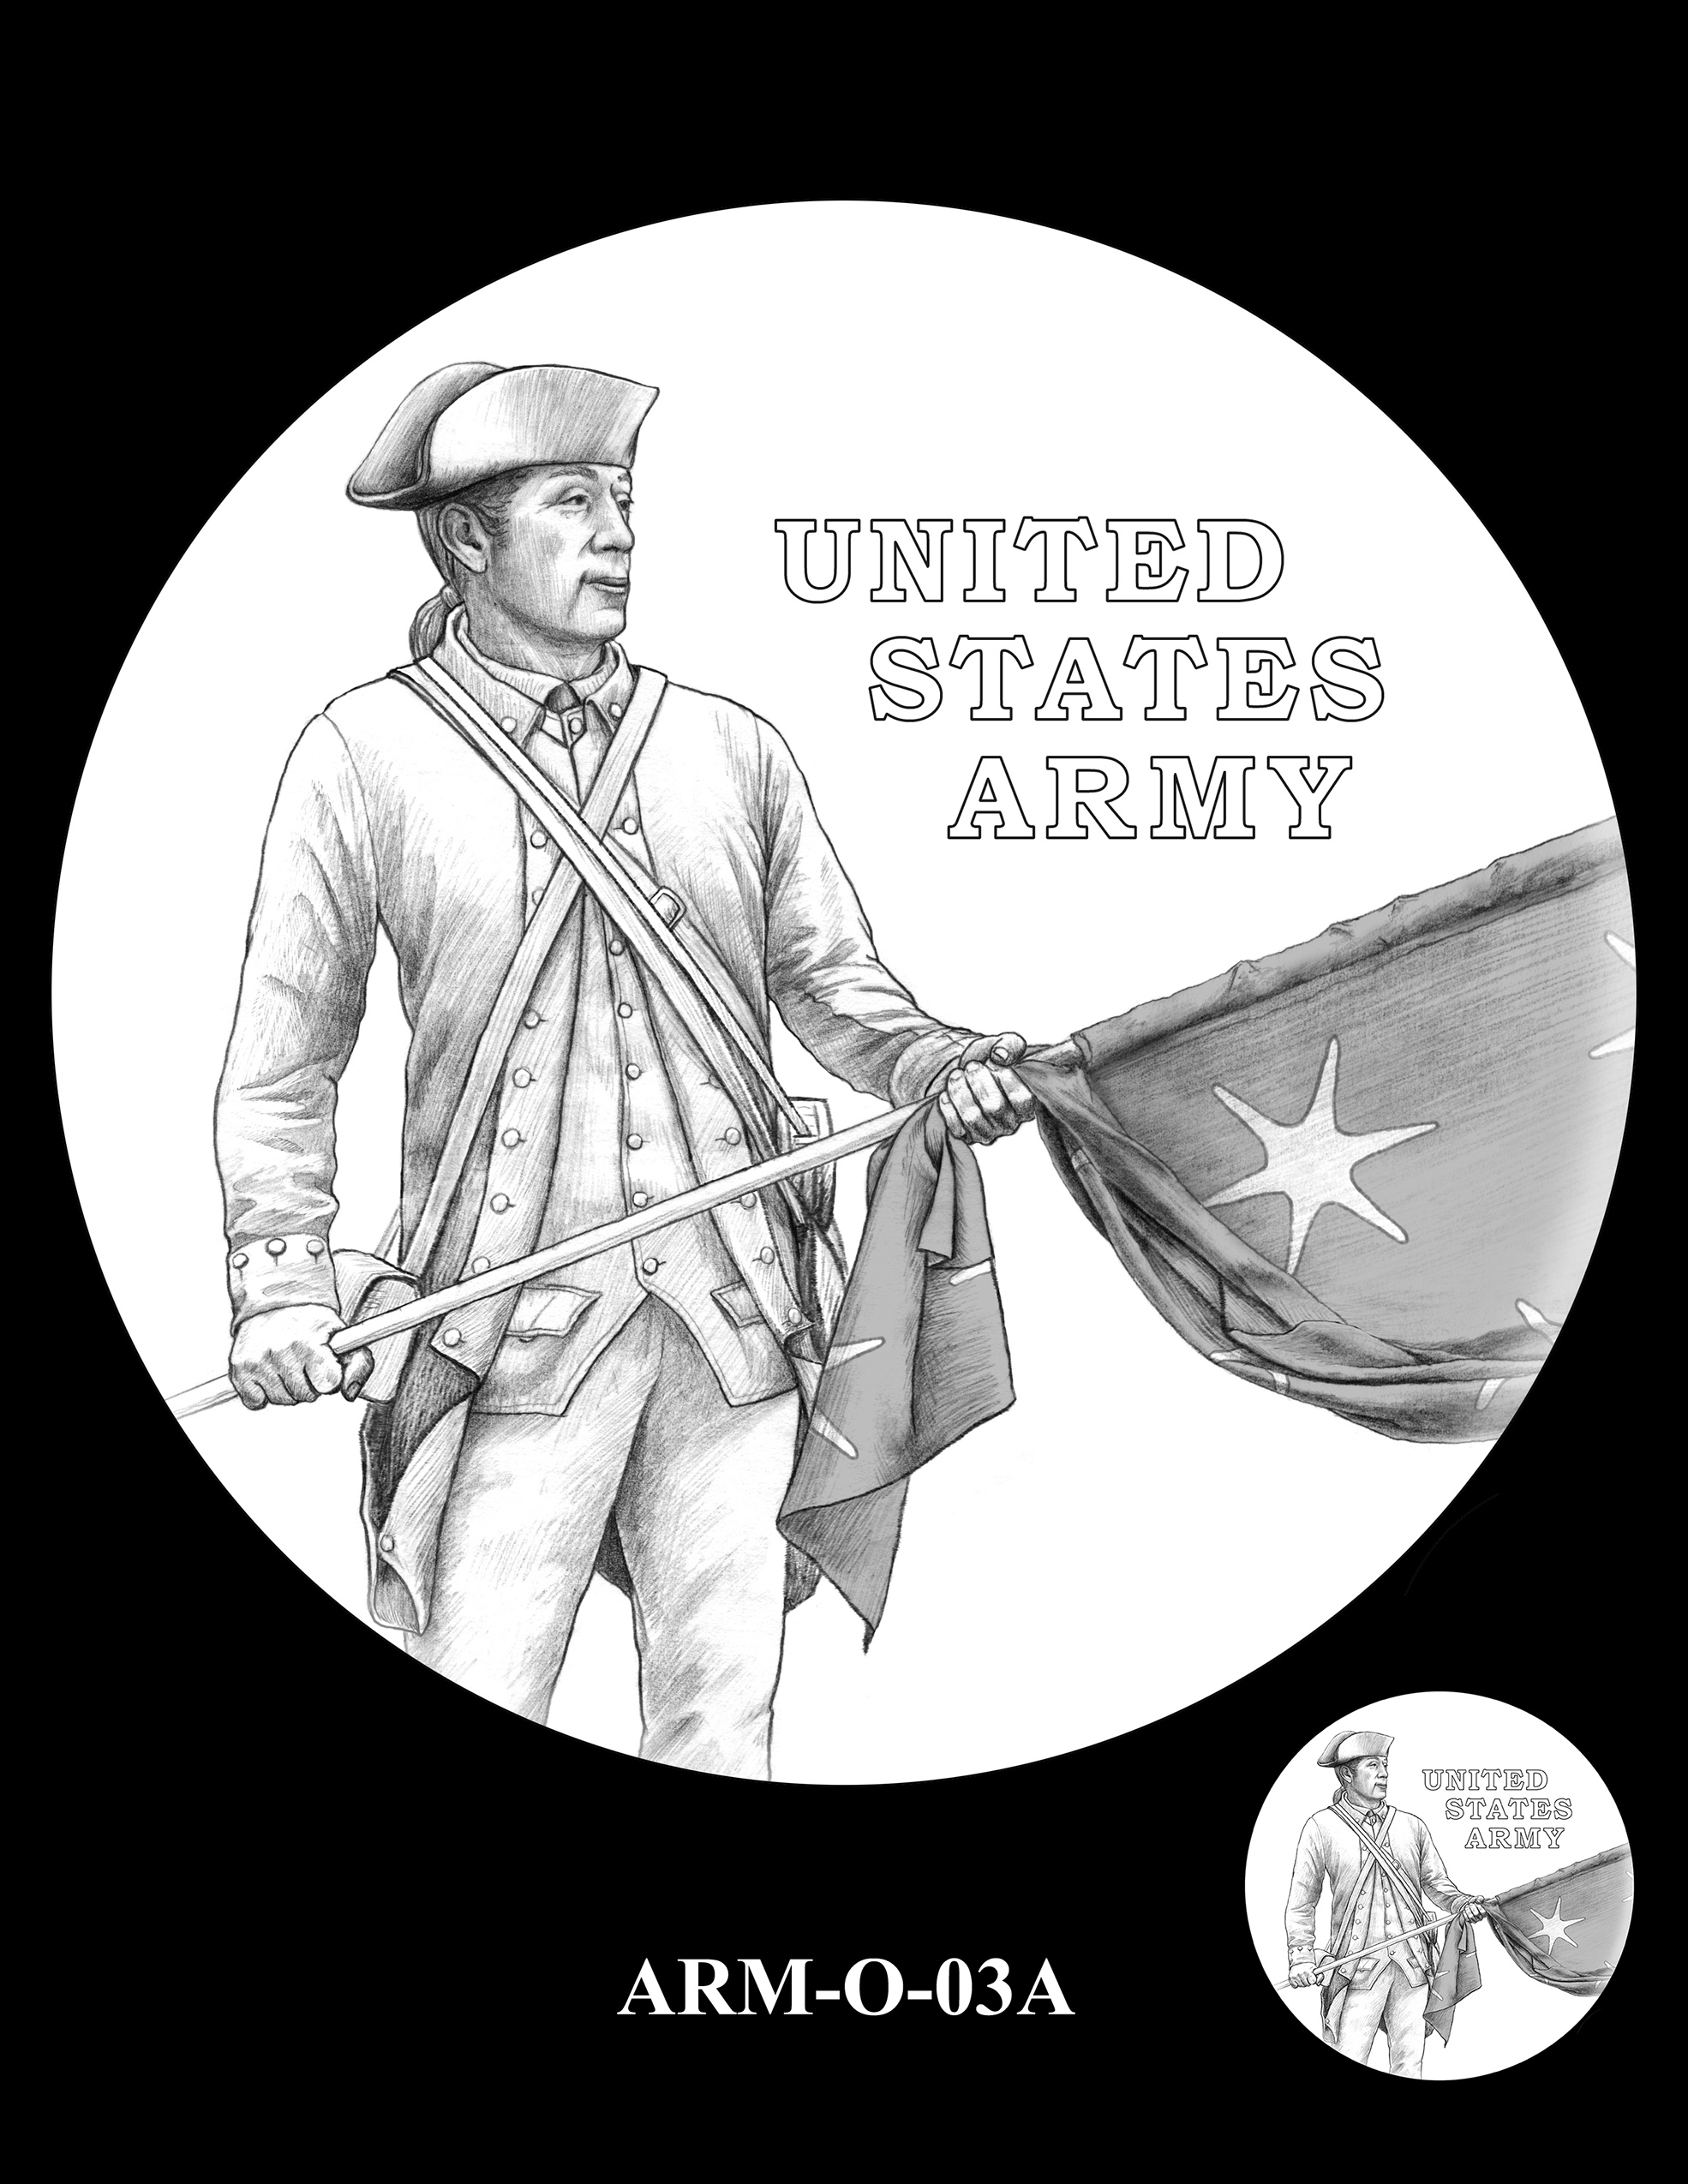 ARM-O-03A -- United States Army Silver Medal